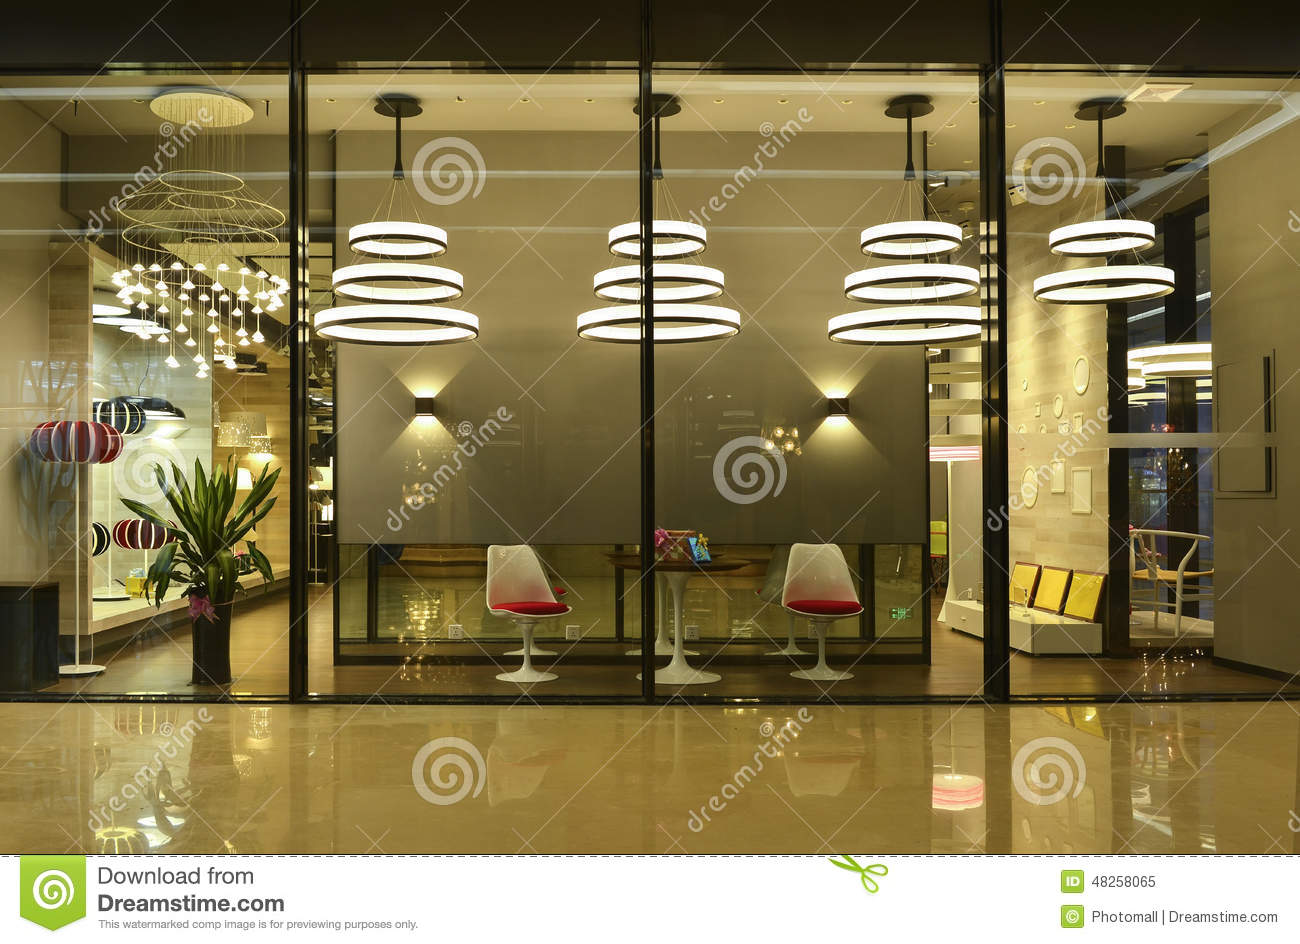 Lighting shop window stock image Image of image electric